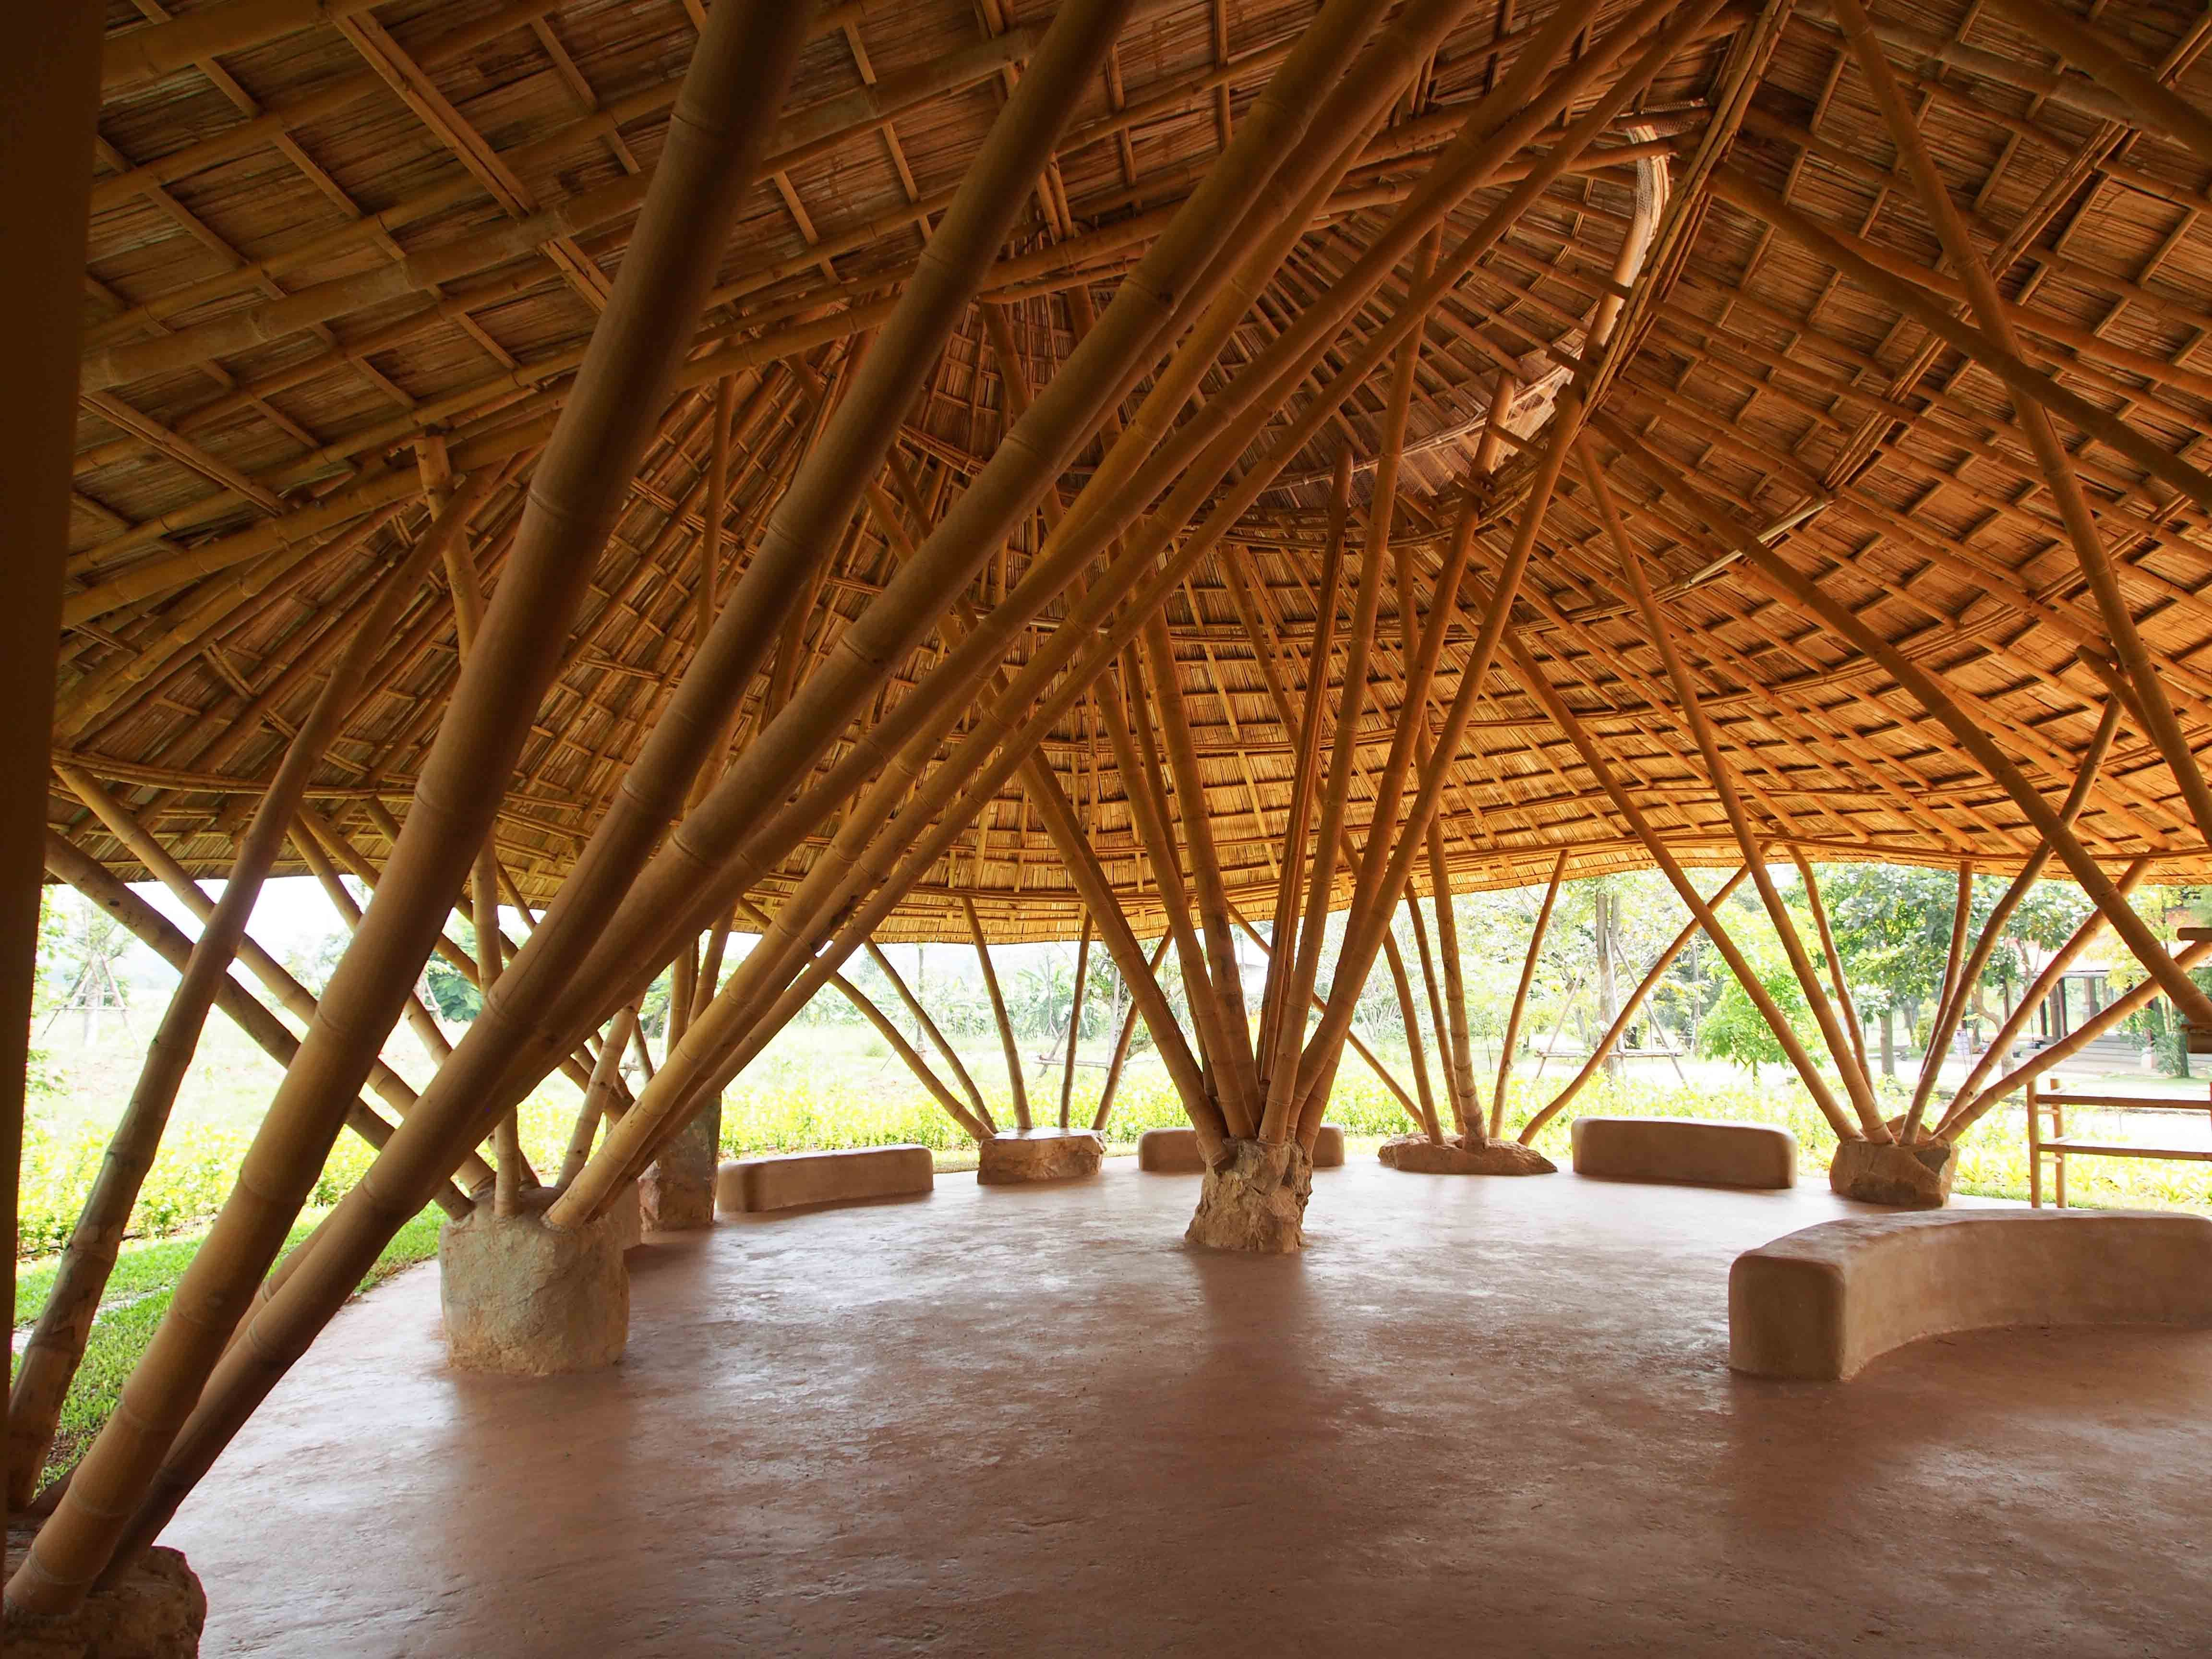 Bamboo structure the bamboo structure is suited - A Survey Of Bamboo Architecture Bamboo Architecture Architecture And Bamboo Design